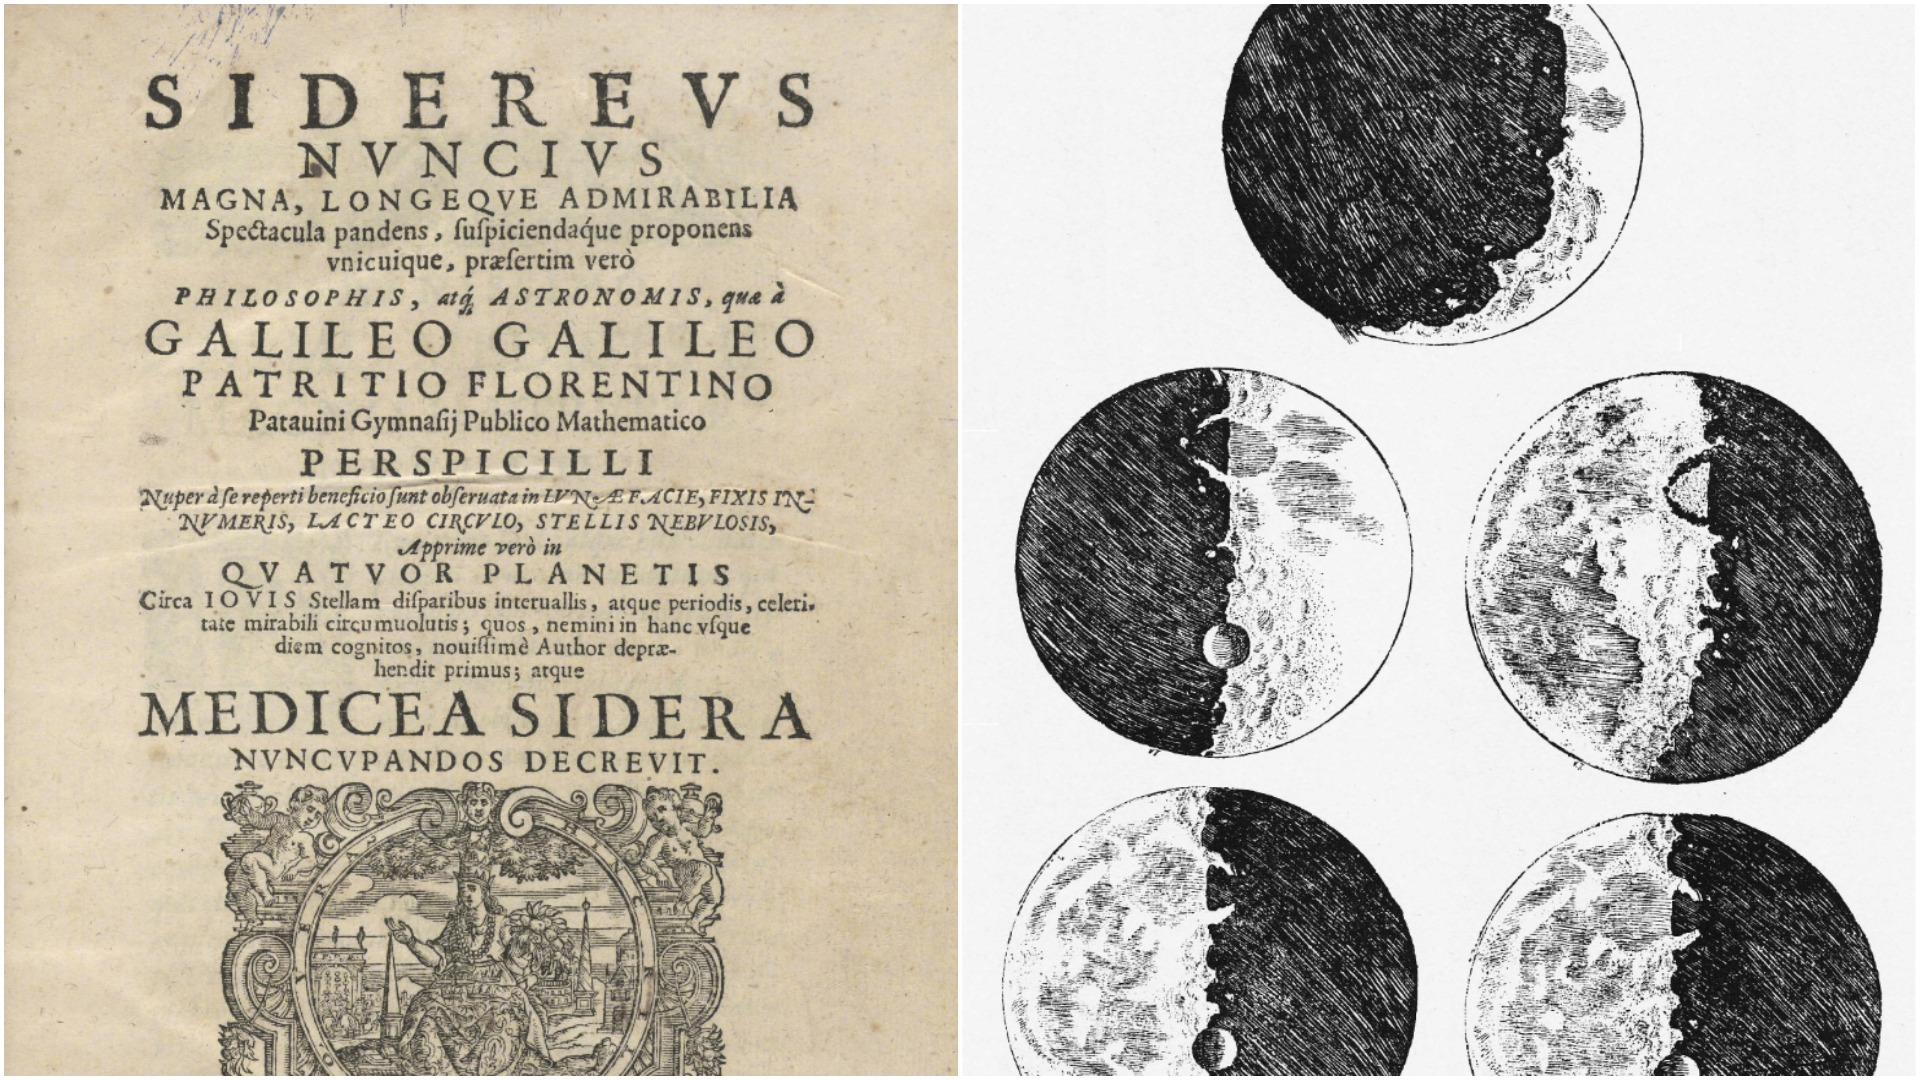 Missing Galileo's treatise: Spain's National Library hides theft for 4 years